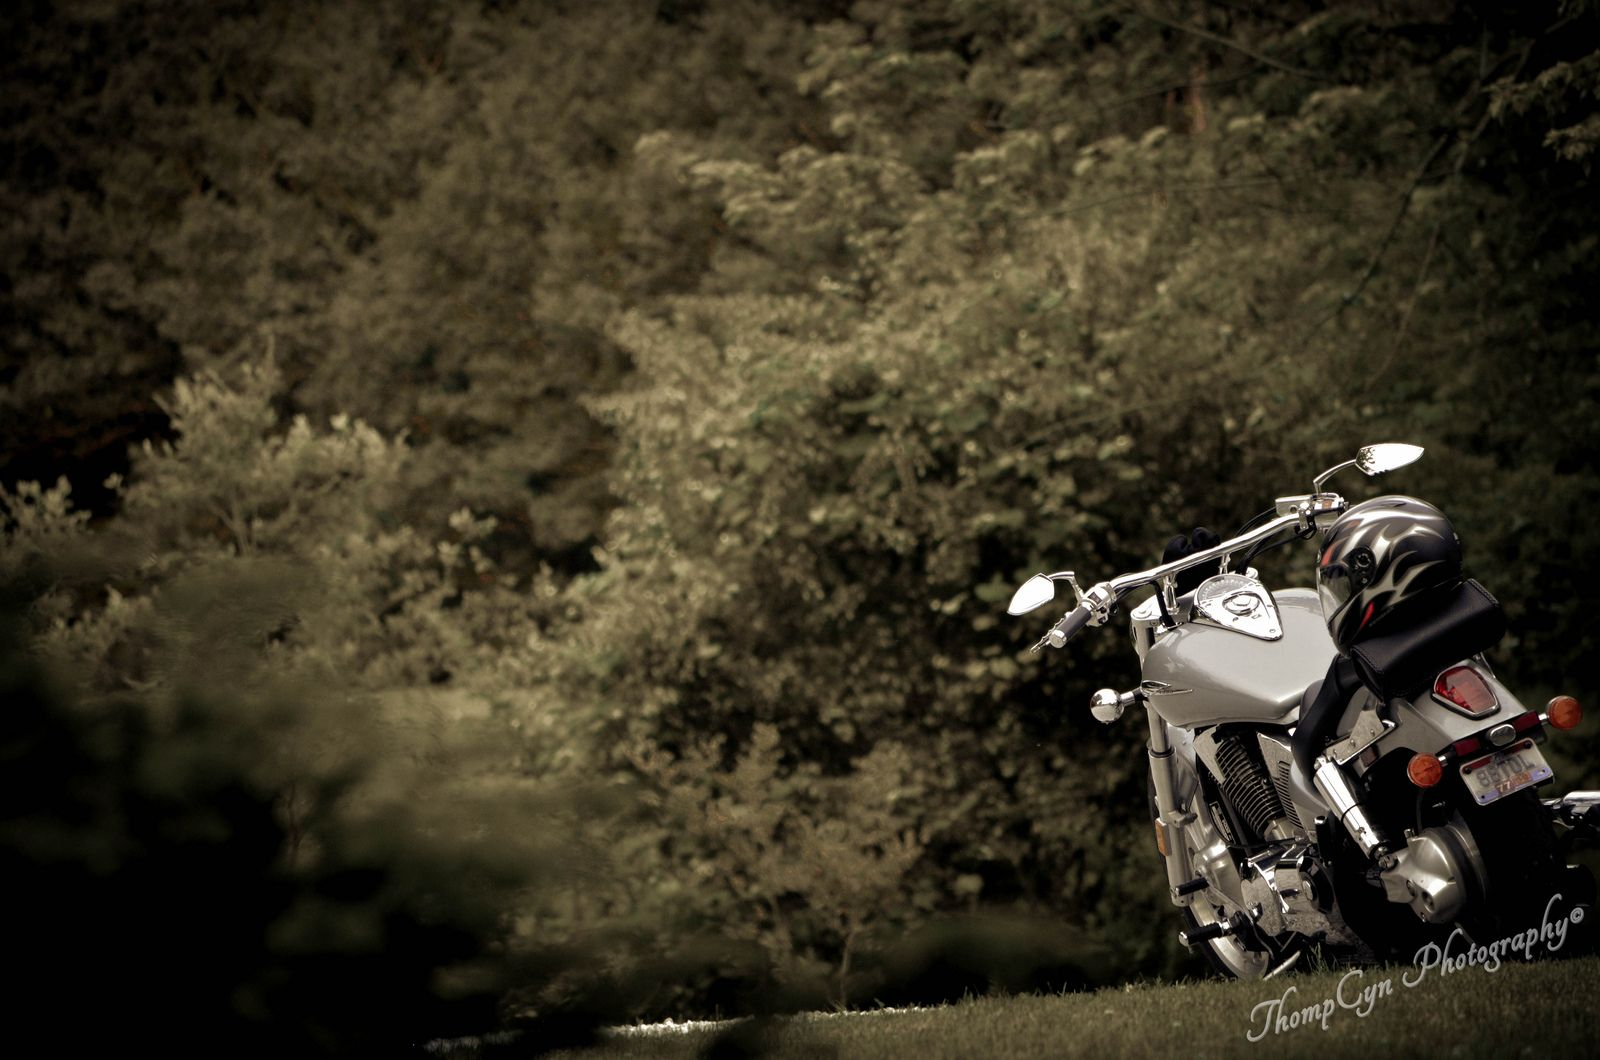 Ready to Ride | Flickr - Photo Sharing!©ThompCyn Photography - Cynthia Harris http://www.thompcynphotography.com